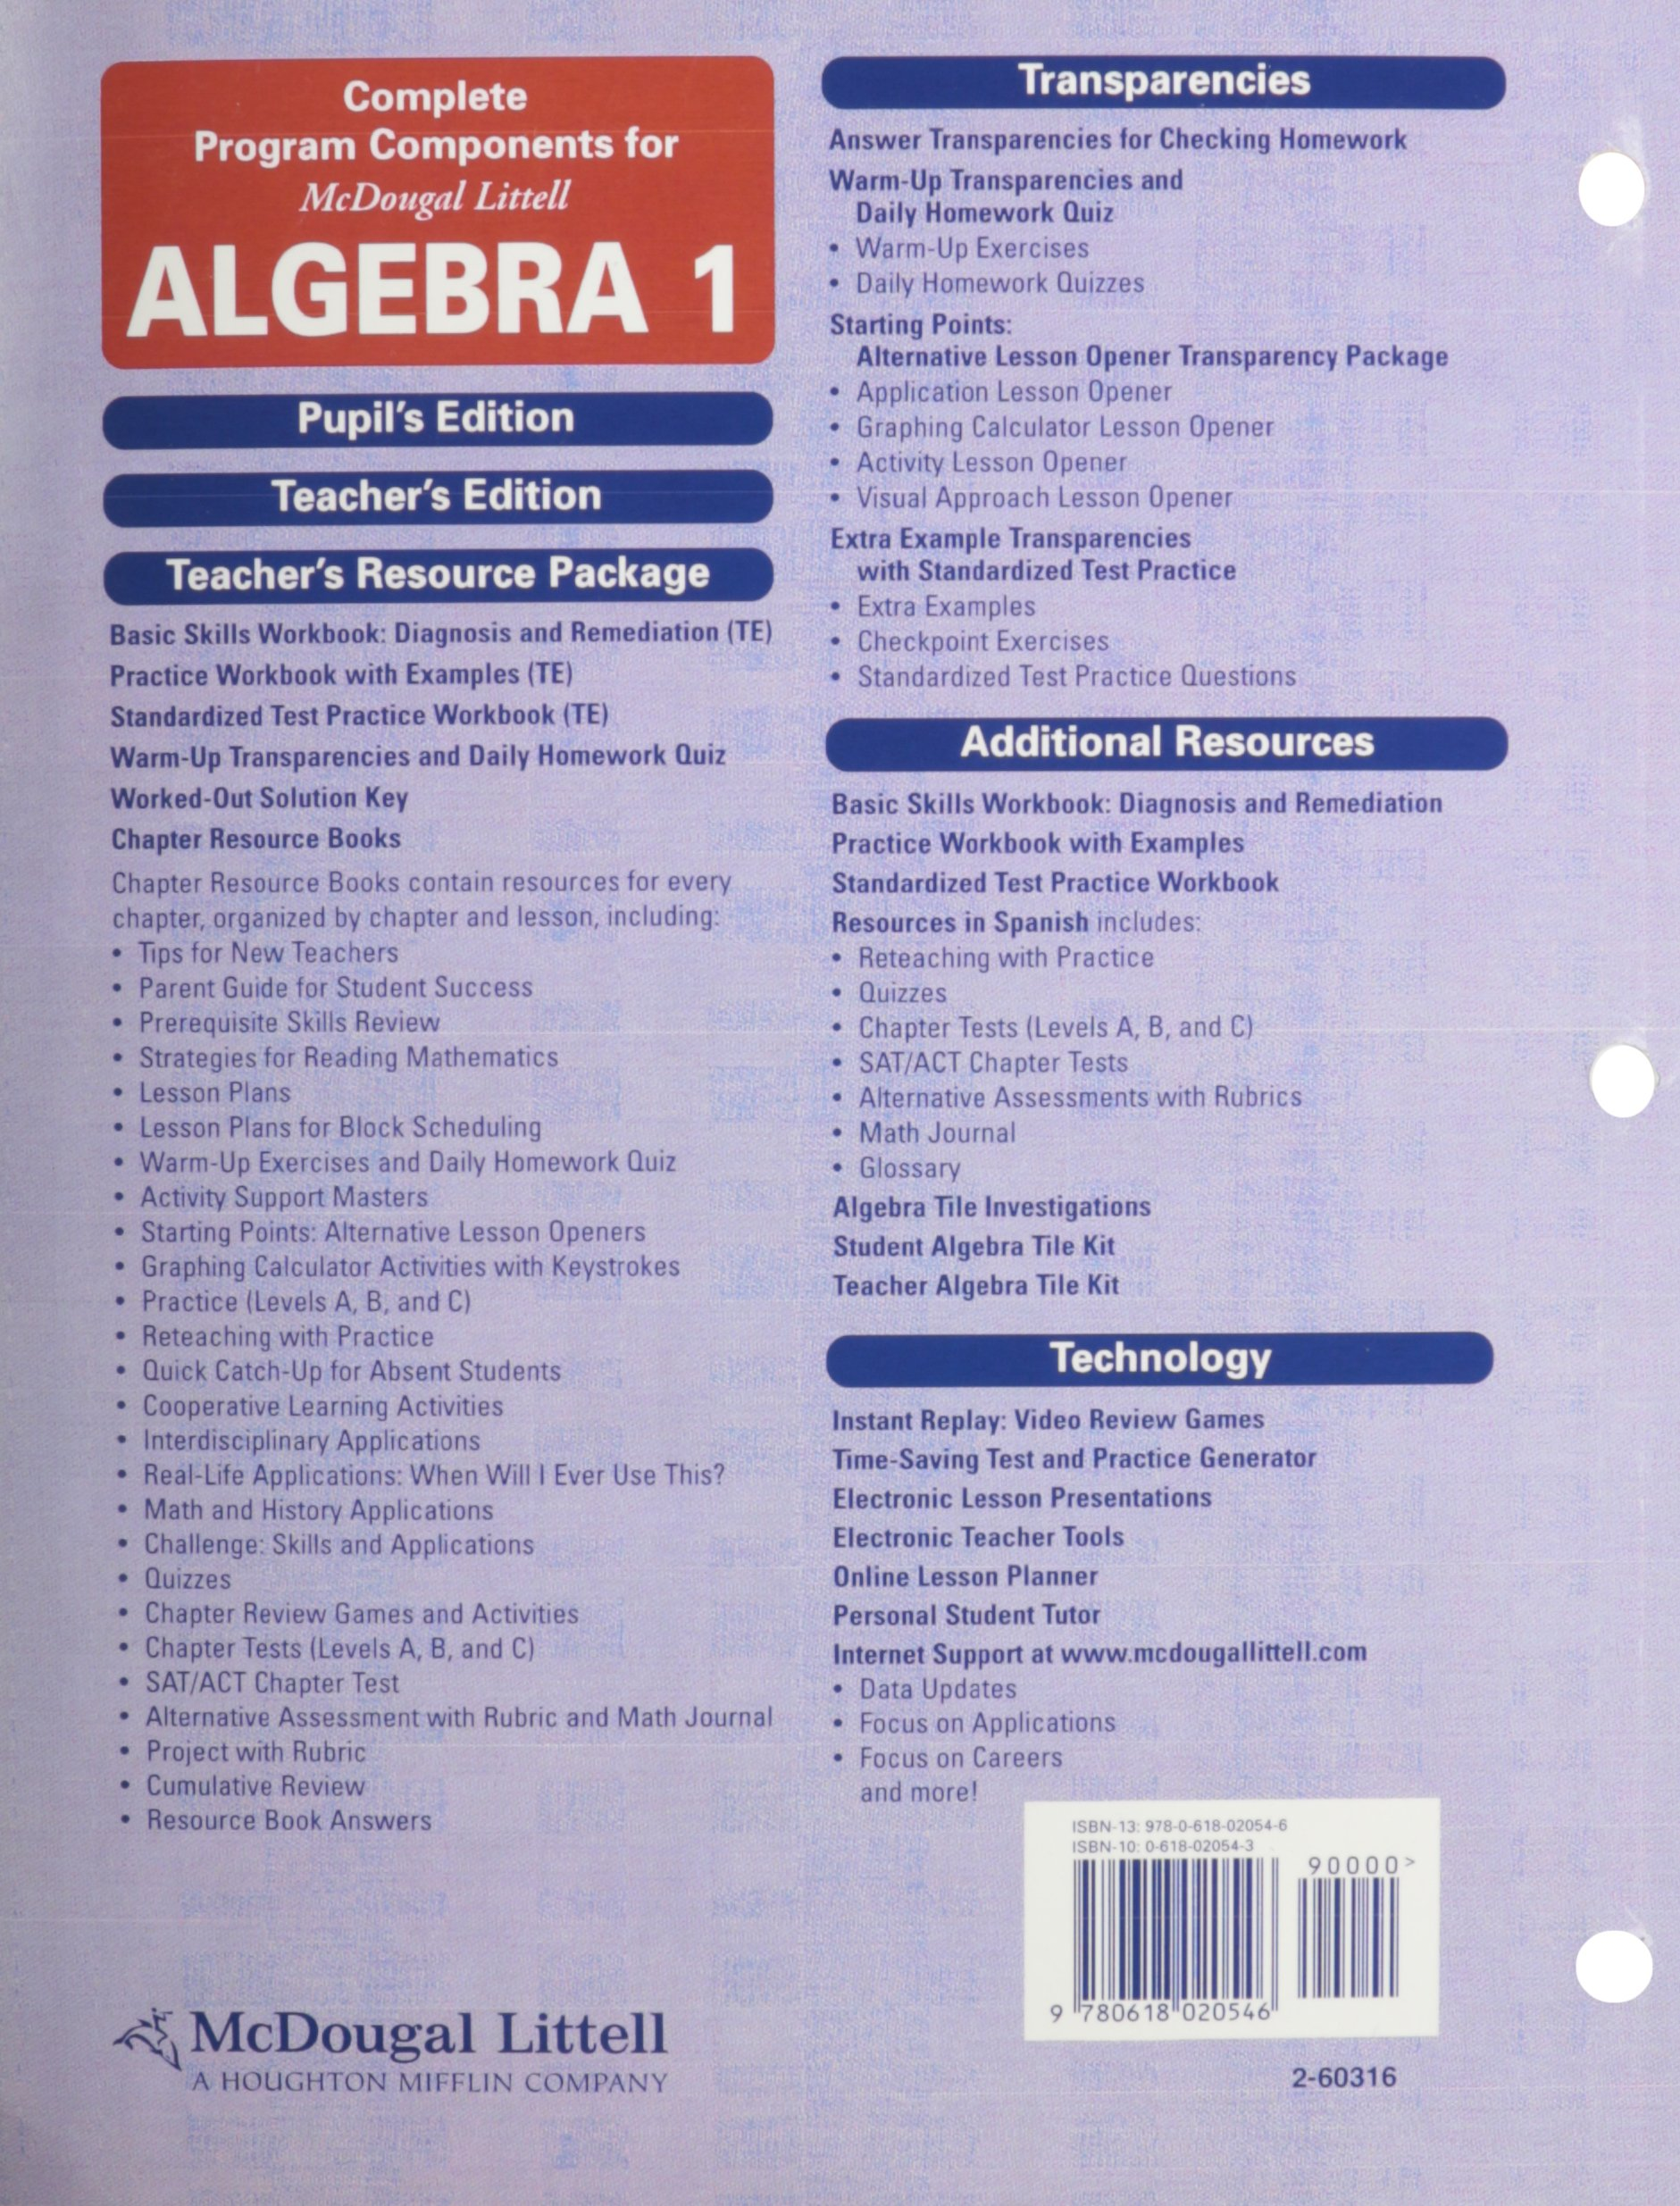 Mcdougal littell algebra 1 standardized test practice workbook mcdougal littell algebra 1 standardized test practice workbook teachers edition mcdougal littel 9780618020546 amazon books fandeluxe Choice Image